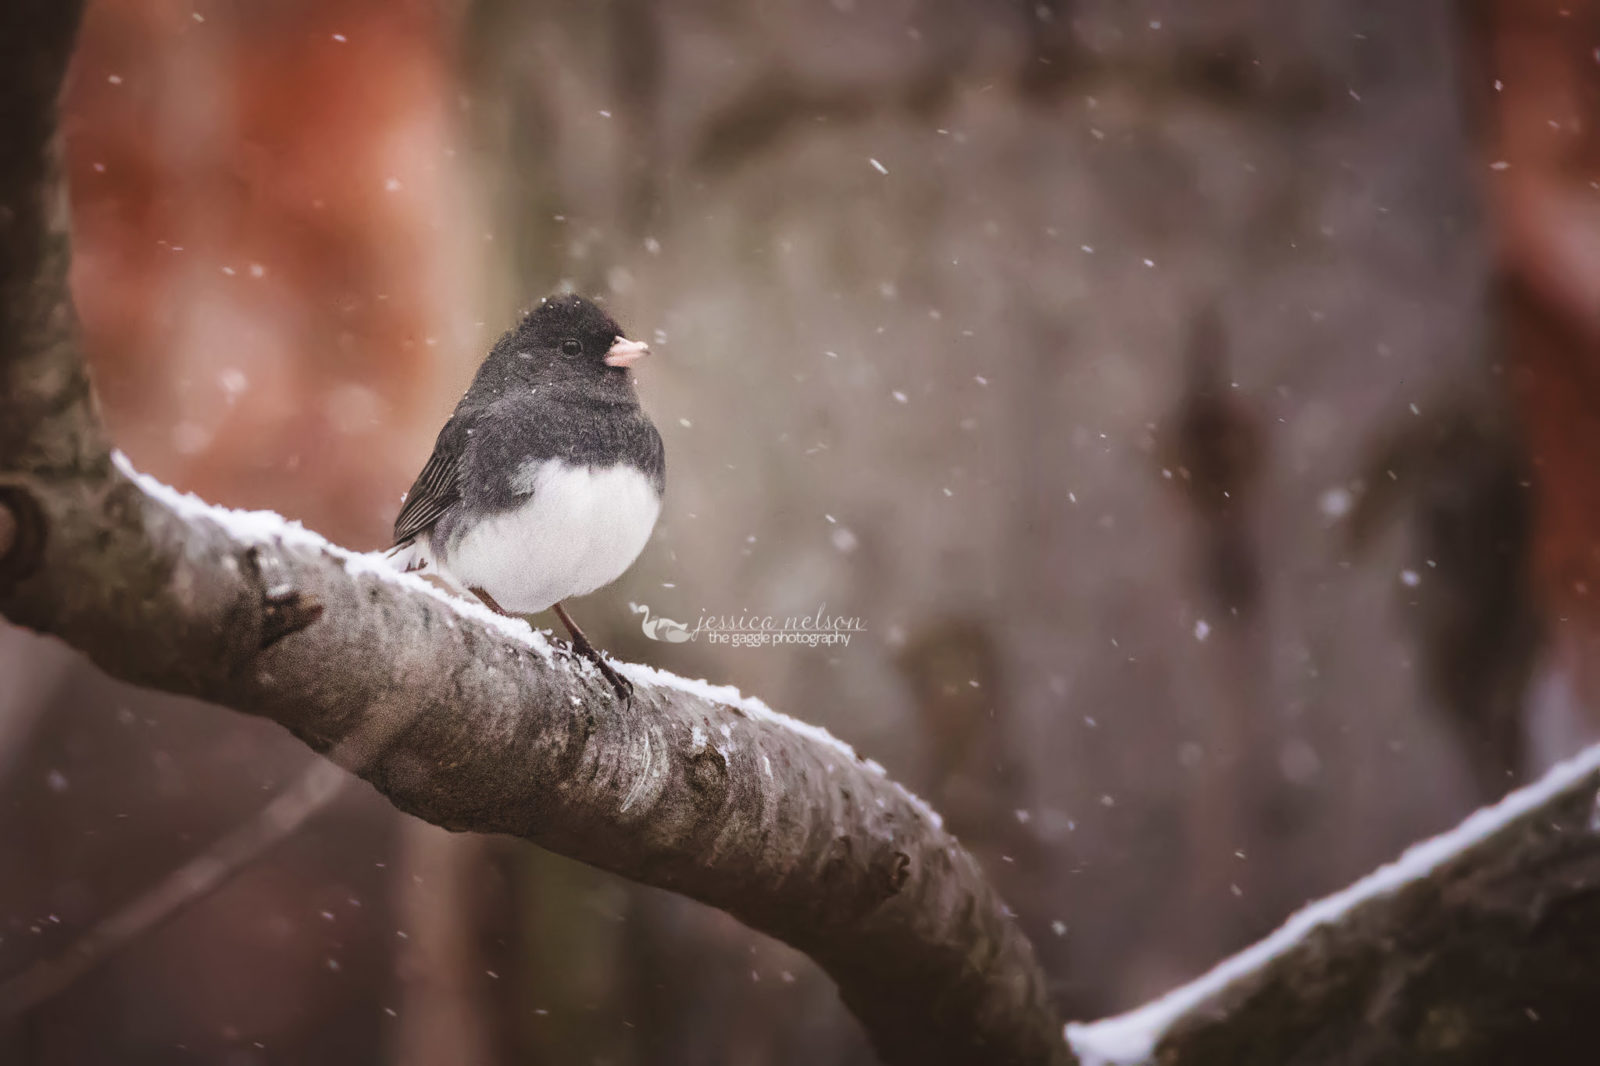 Junco and the Snowstorm